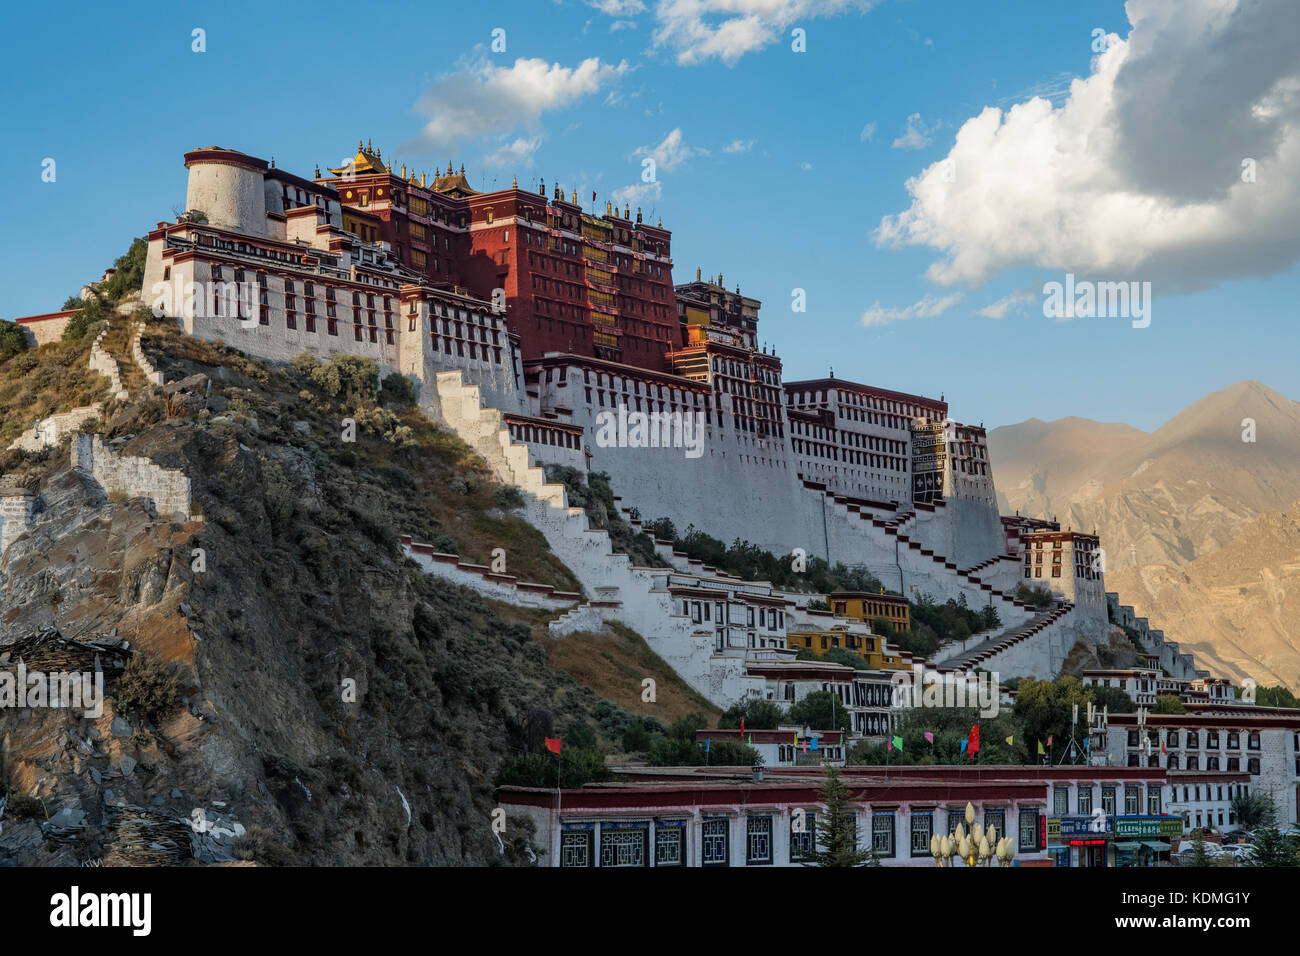 Potala Palace in Evening, Lhasa, Tibet, China - Stock Image